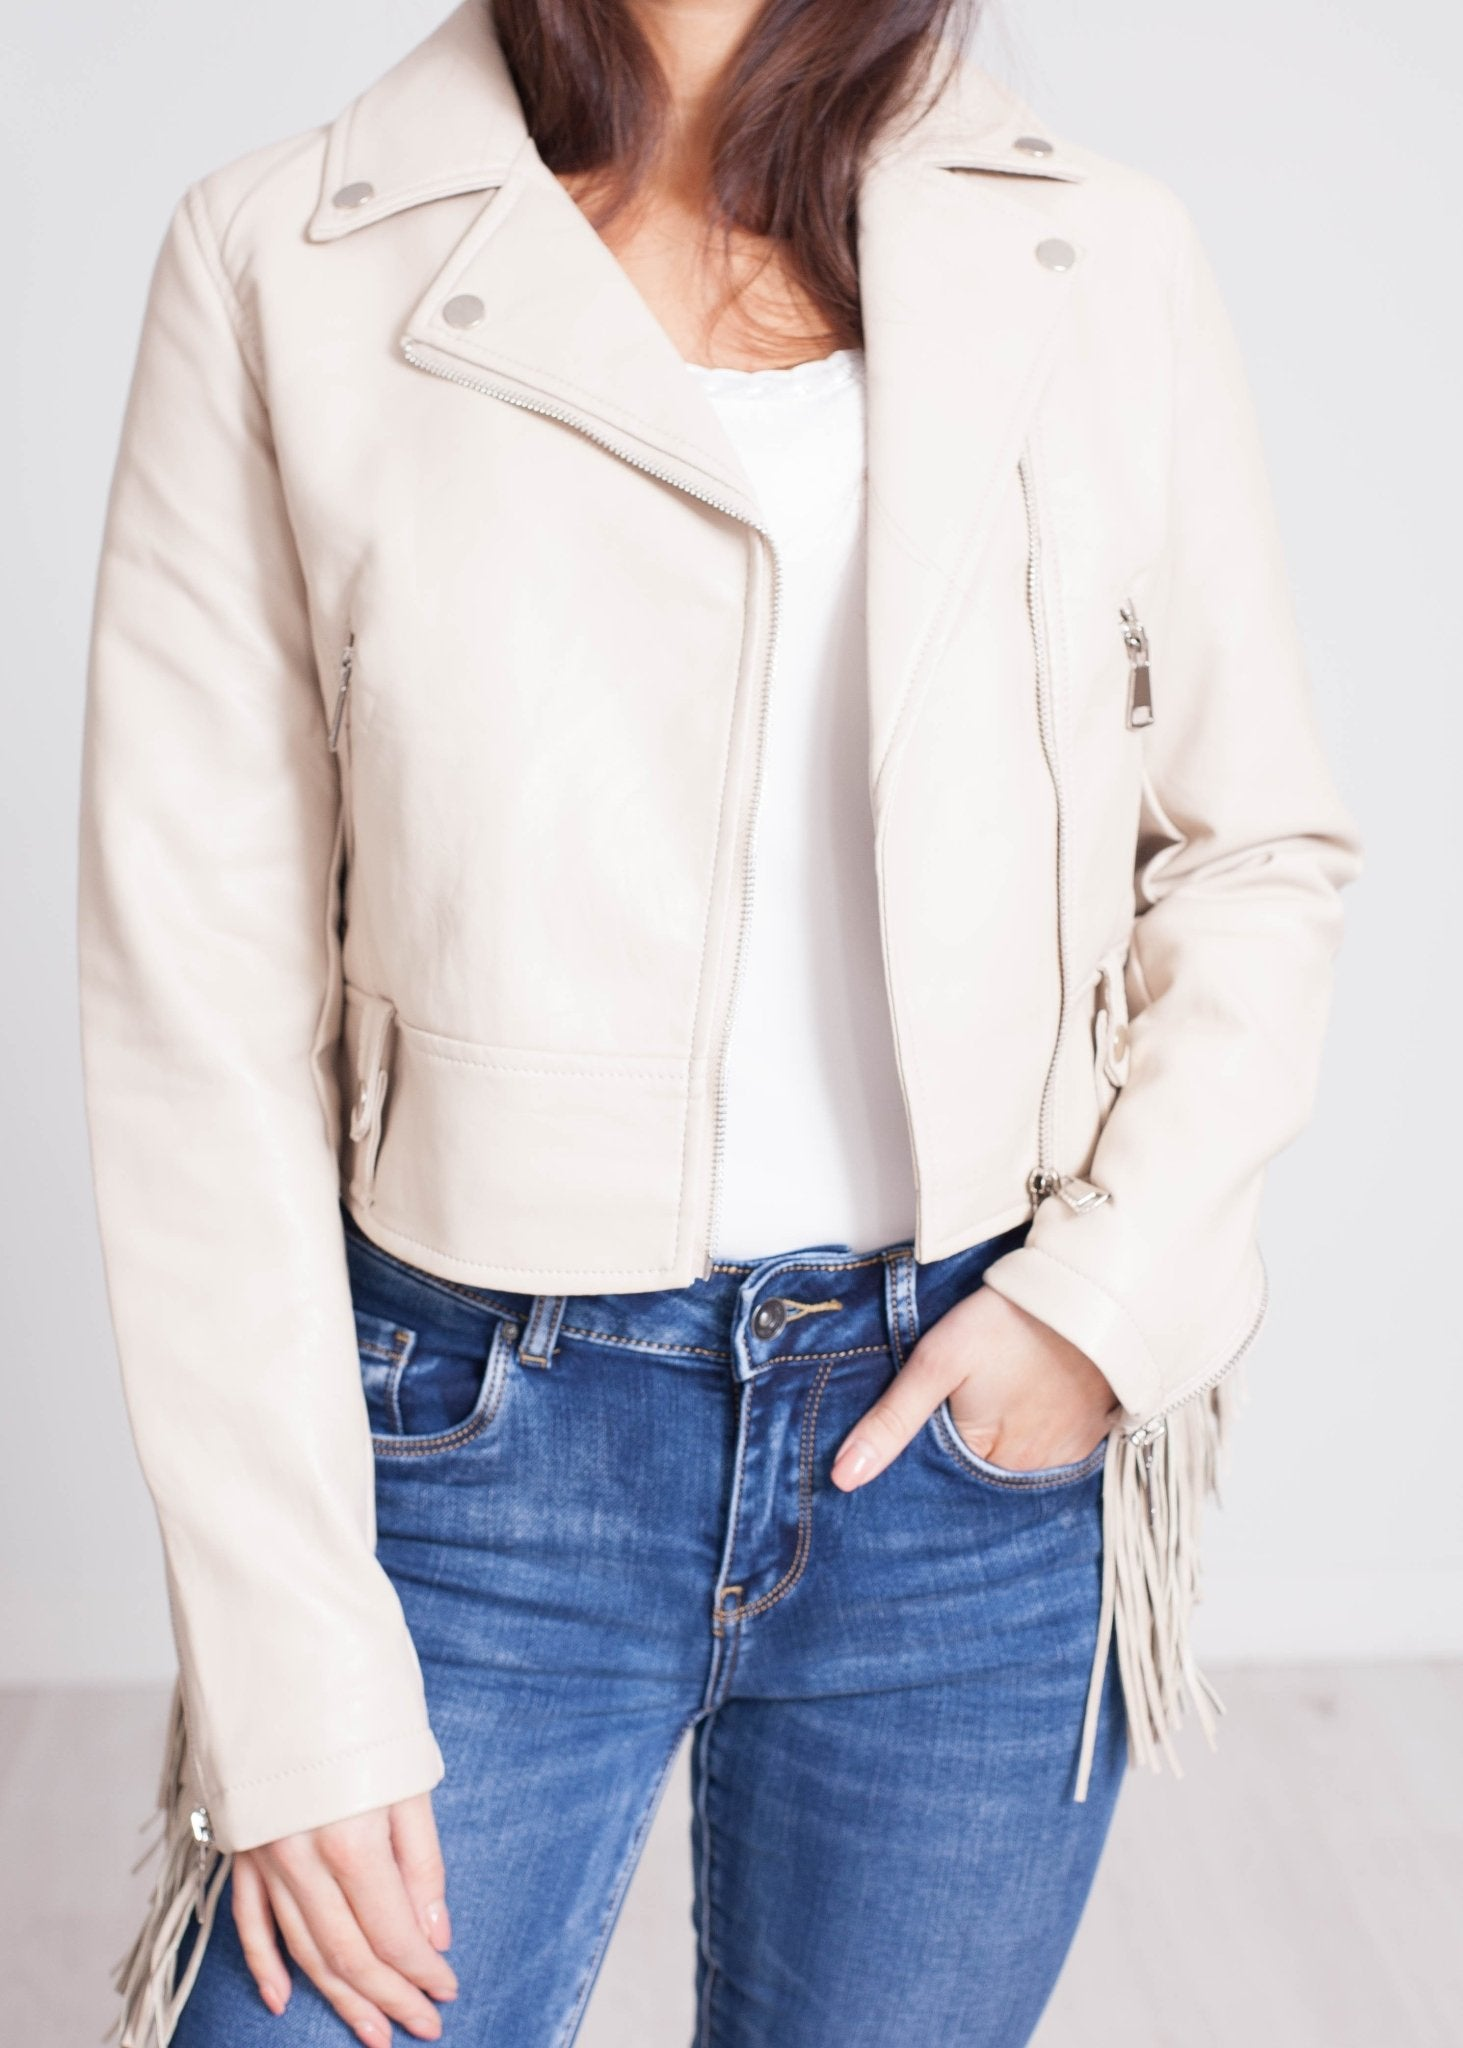 Caitlyn Fringed Leather Jacket In Stone - The Walk in Wardrobe